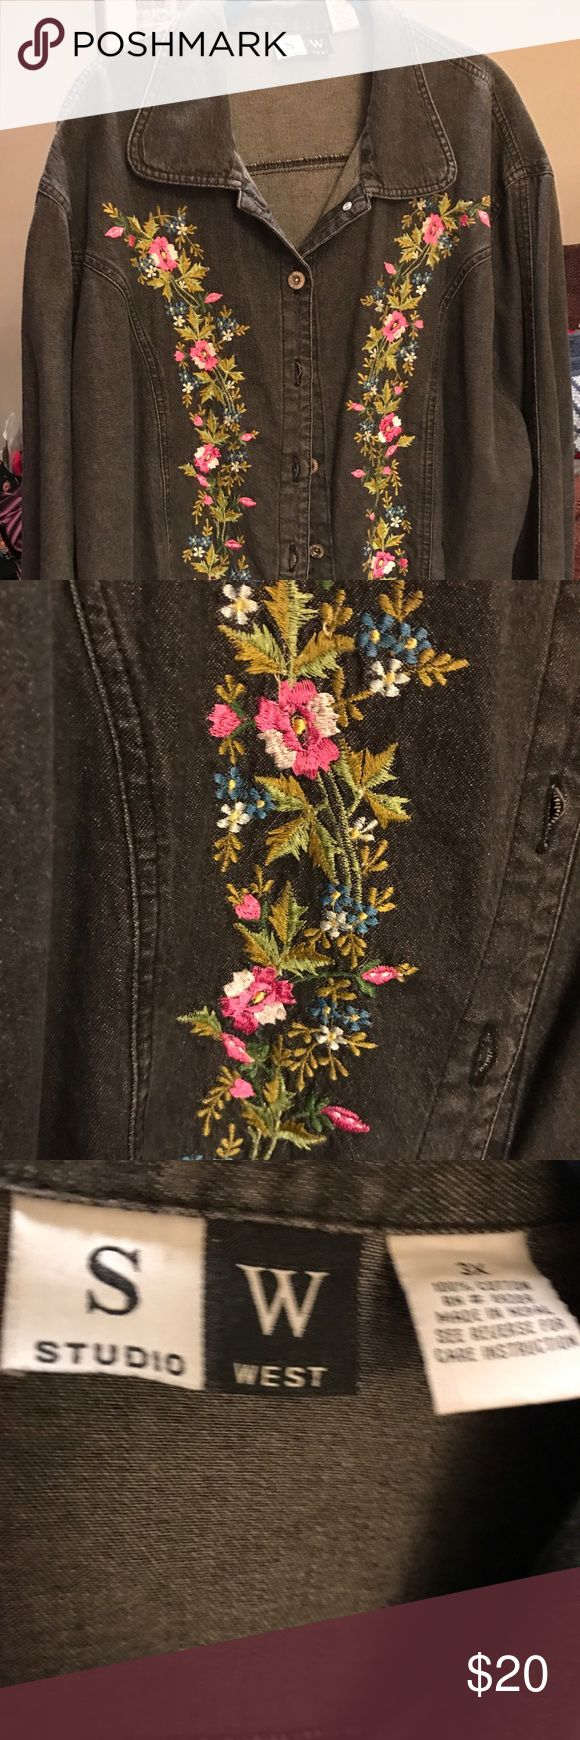 Studio West Jean jacket and skirt Jean jacket with shirt. 100 percent cotton. Embroidery on the jacket and skirt. Skirt has elastic waist and 2 side slits jacket id button up front.  Very slightly distressed appearance. Excellent condition. Studio West Dresses